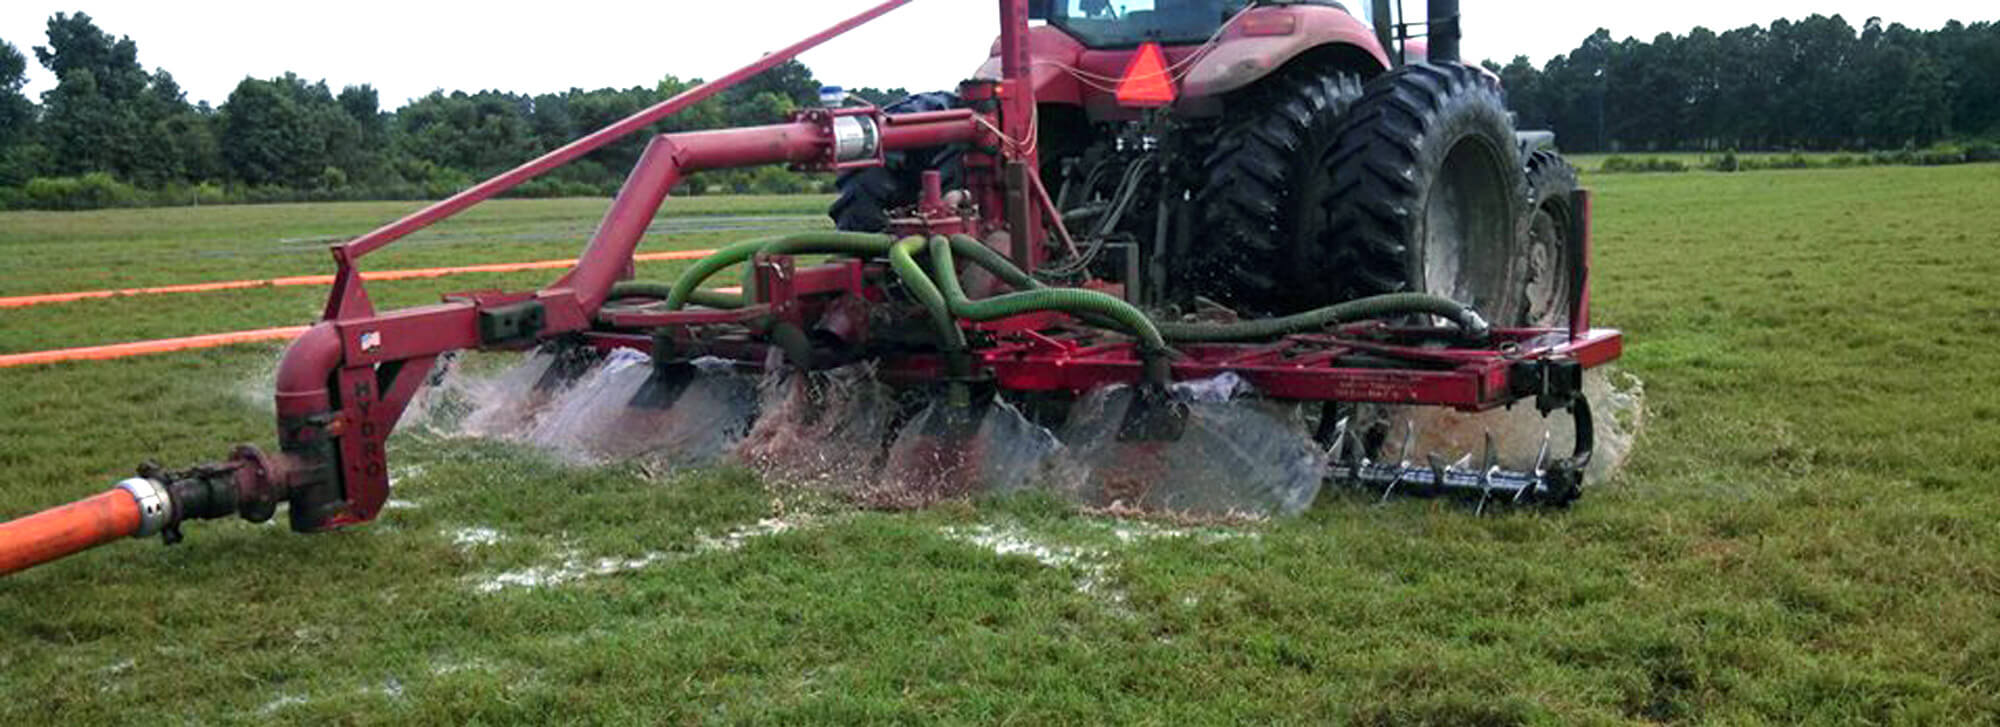 Direct manure injectors behind a large tractor